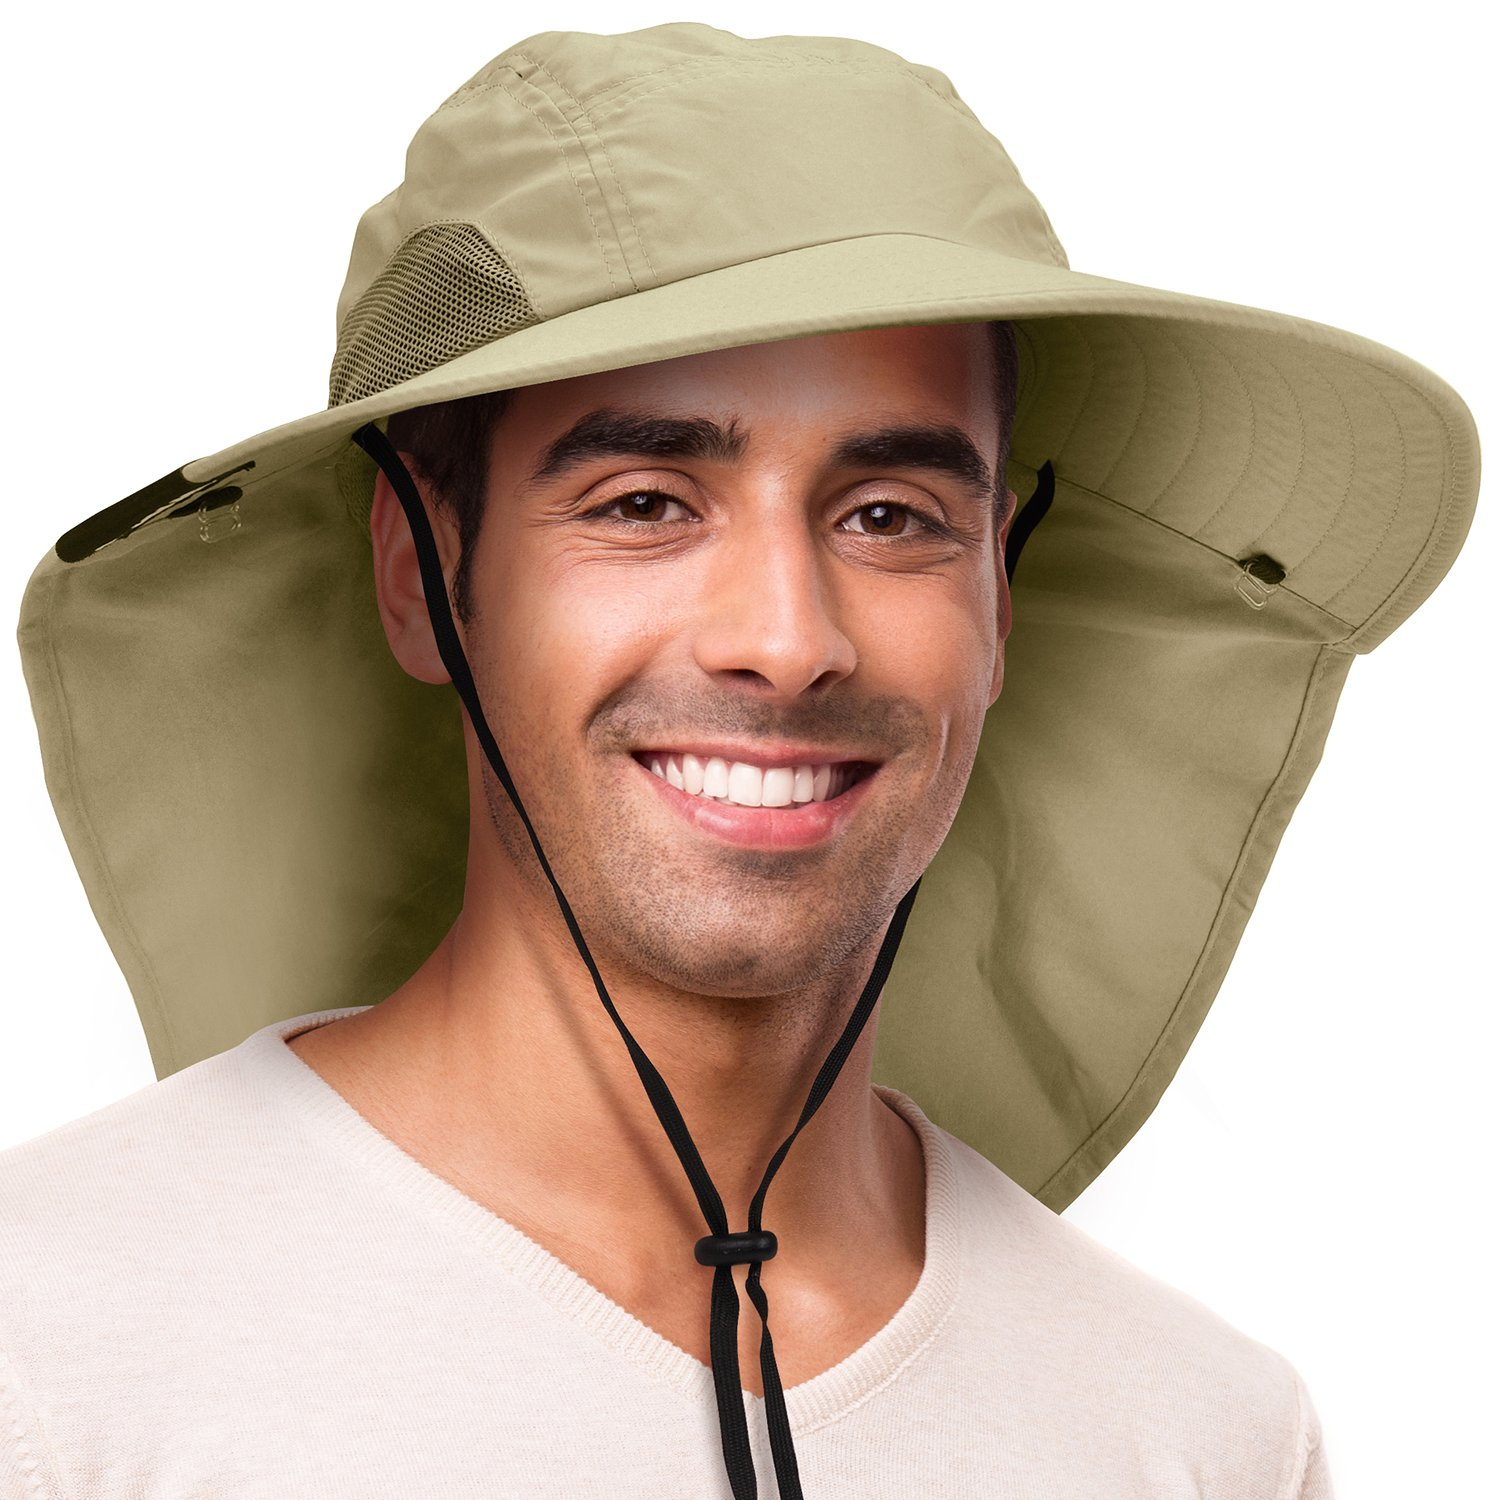 Solaris Outdoor Fishing Hat with Ear Neck Flap Cover Wide Brim Sun Protection Safari Cap for Men Women Hunting, Hiking, Camping, Boating Outdoor Adventures